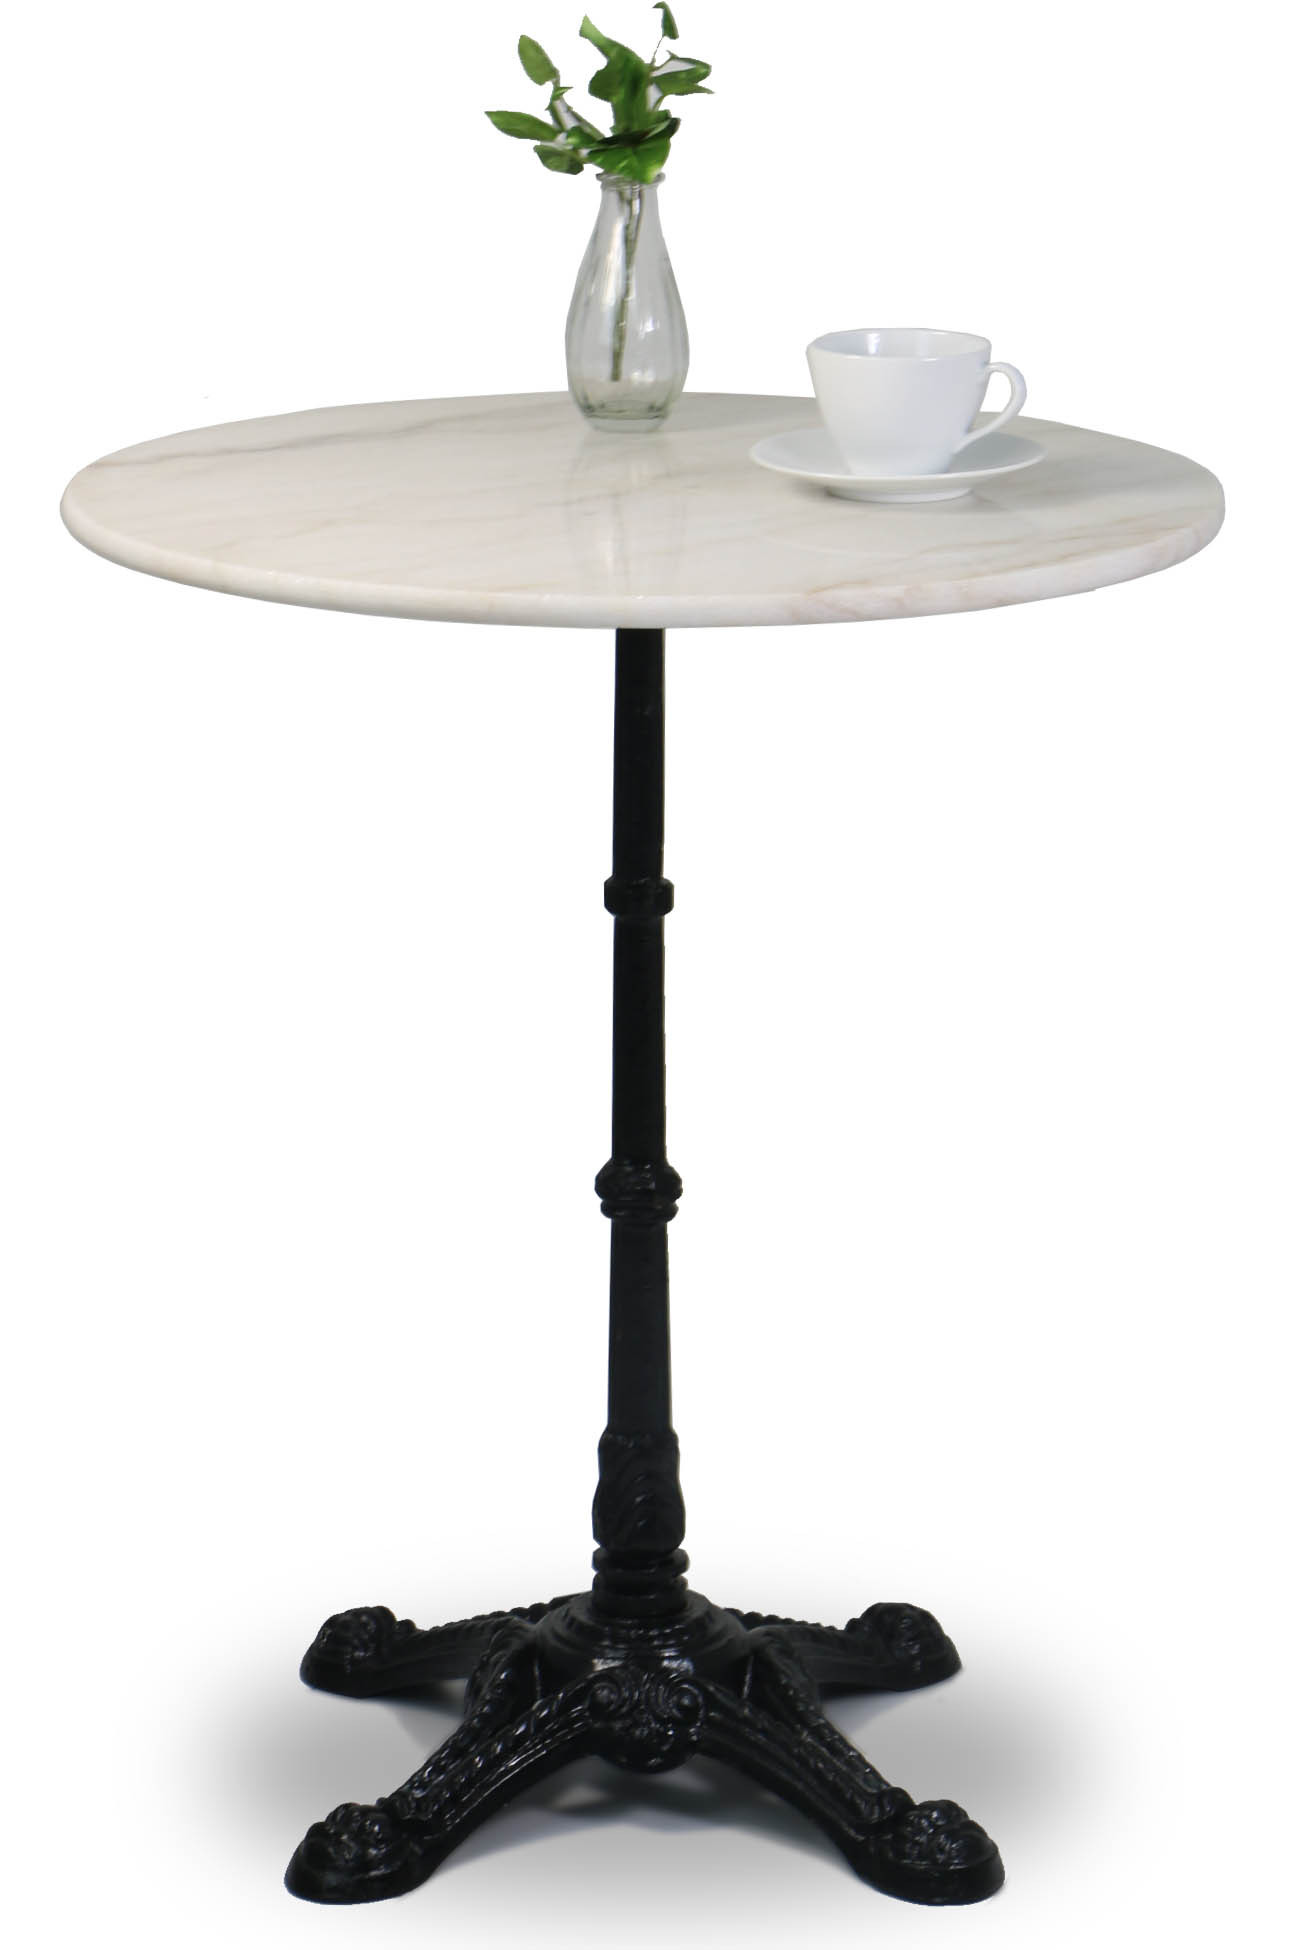 Monochrome Furniture Monochrome Marble Table Furniture And Home Décor Fortytwo